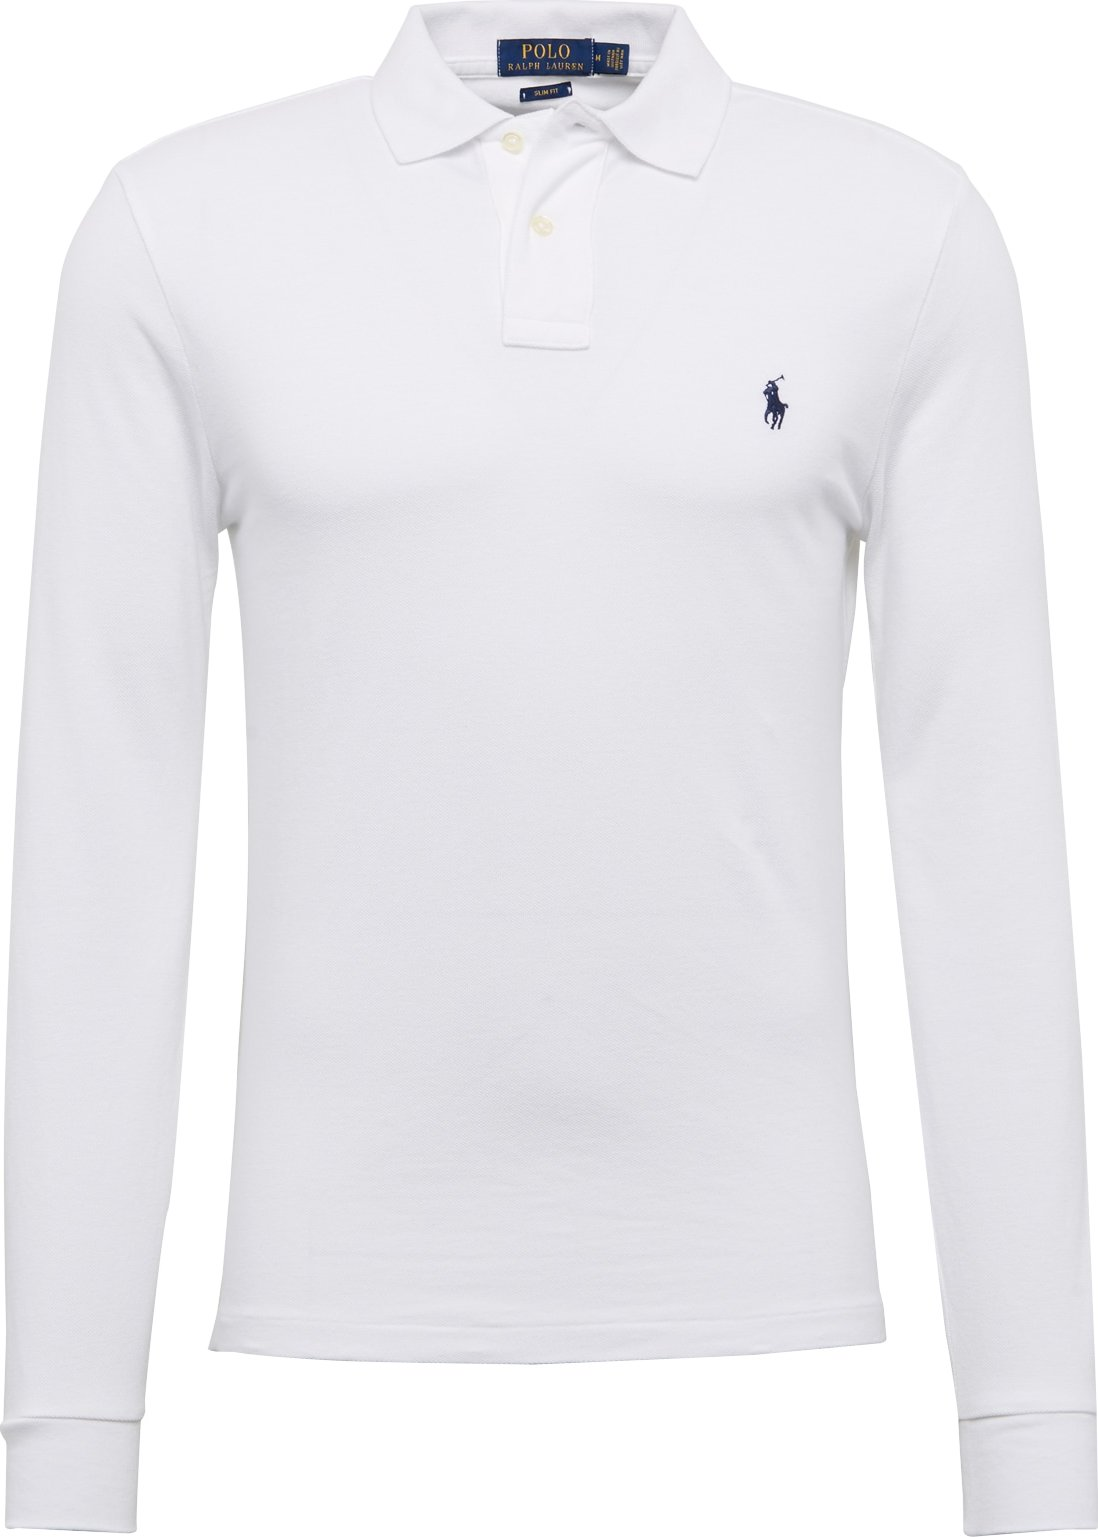 POLO RALPH LAUREN Tričko LSKCSLIMM2-LONG SLEEVE-KNIT bílá Polo Ralph Lauren